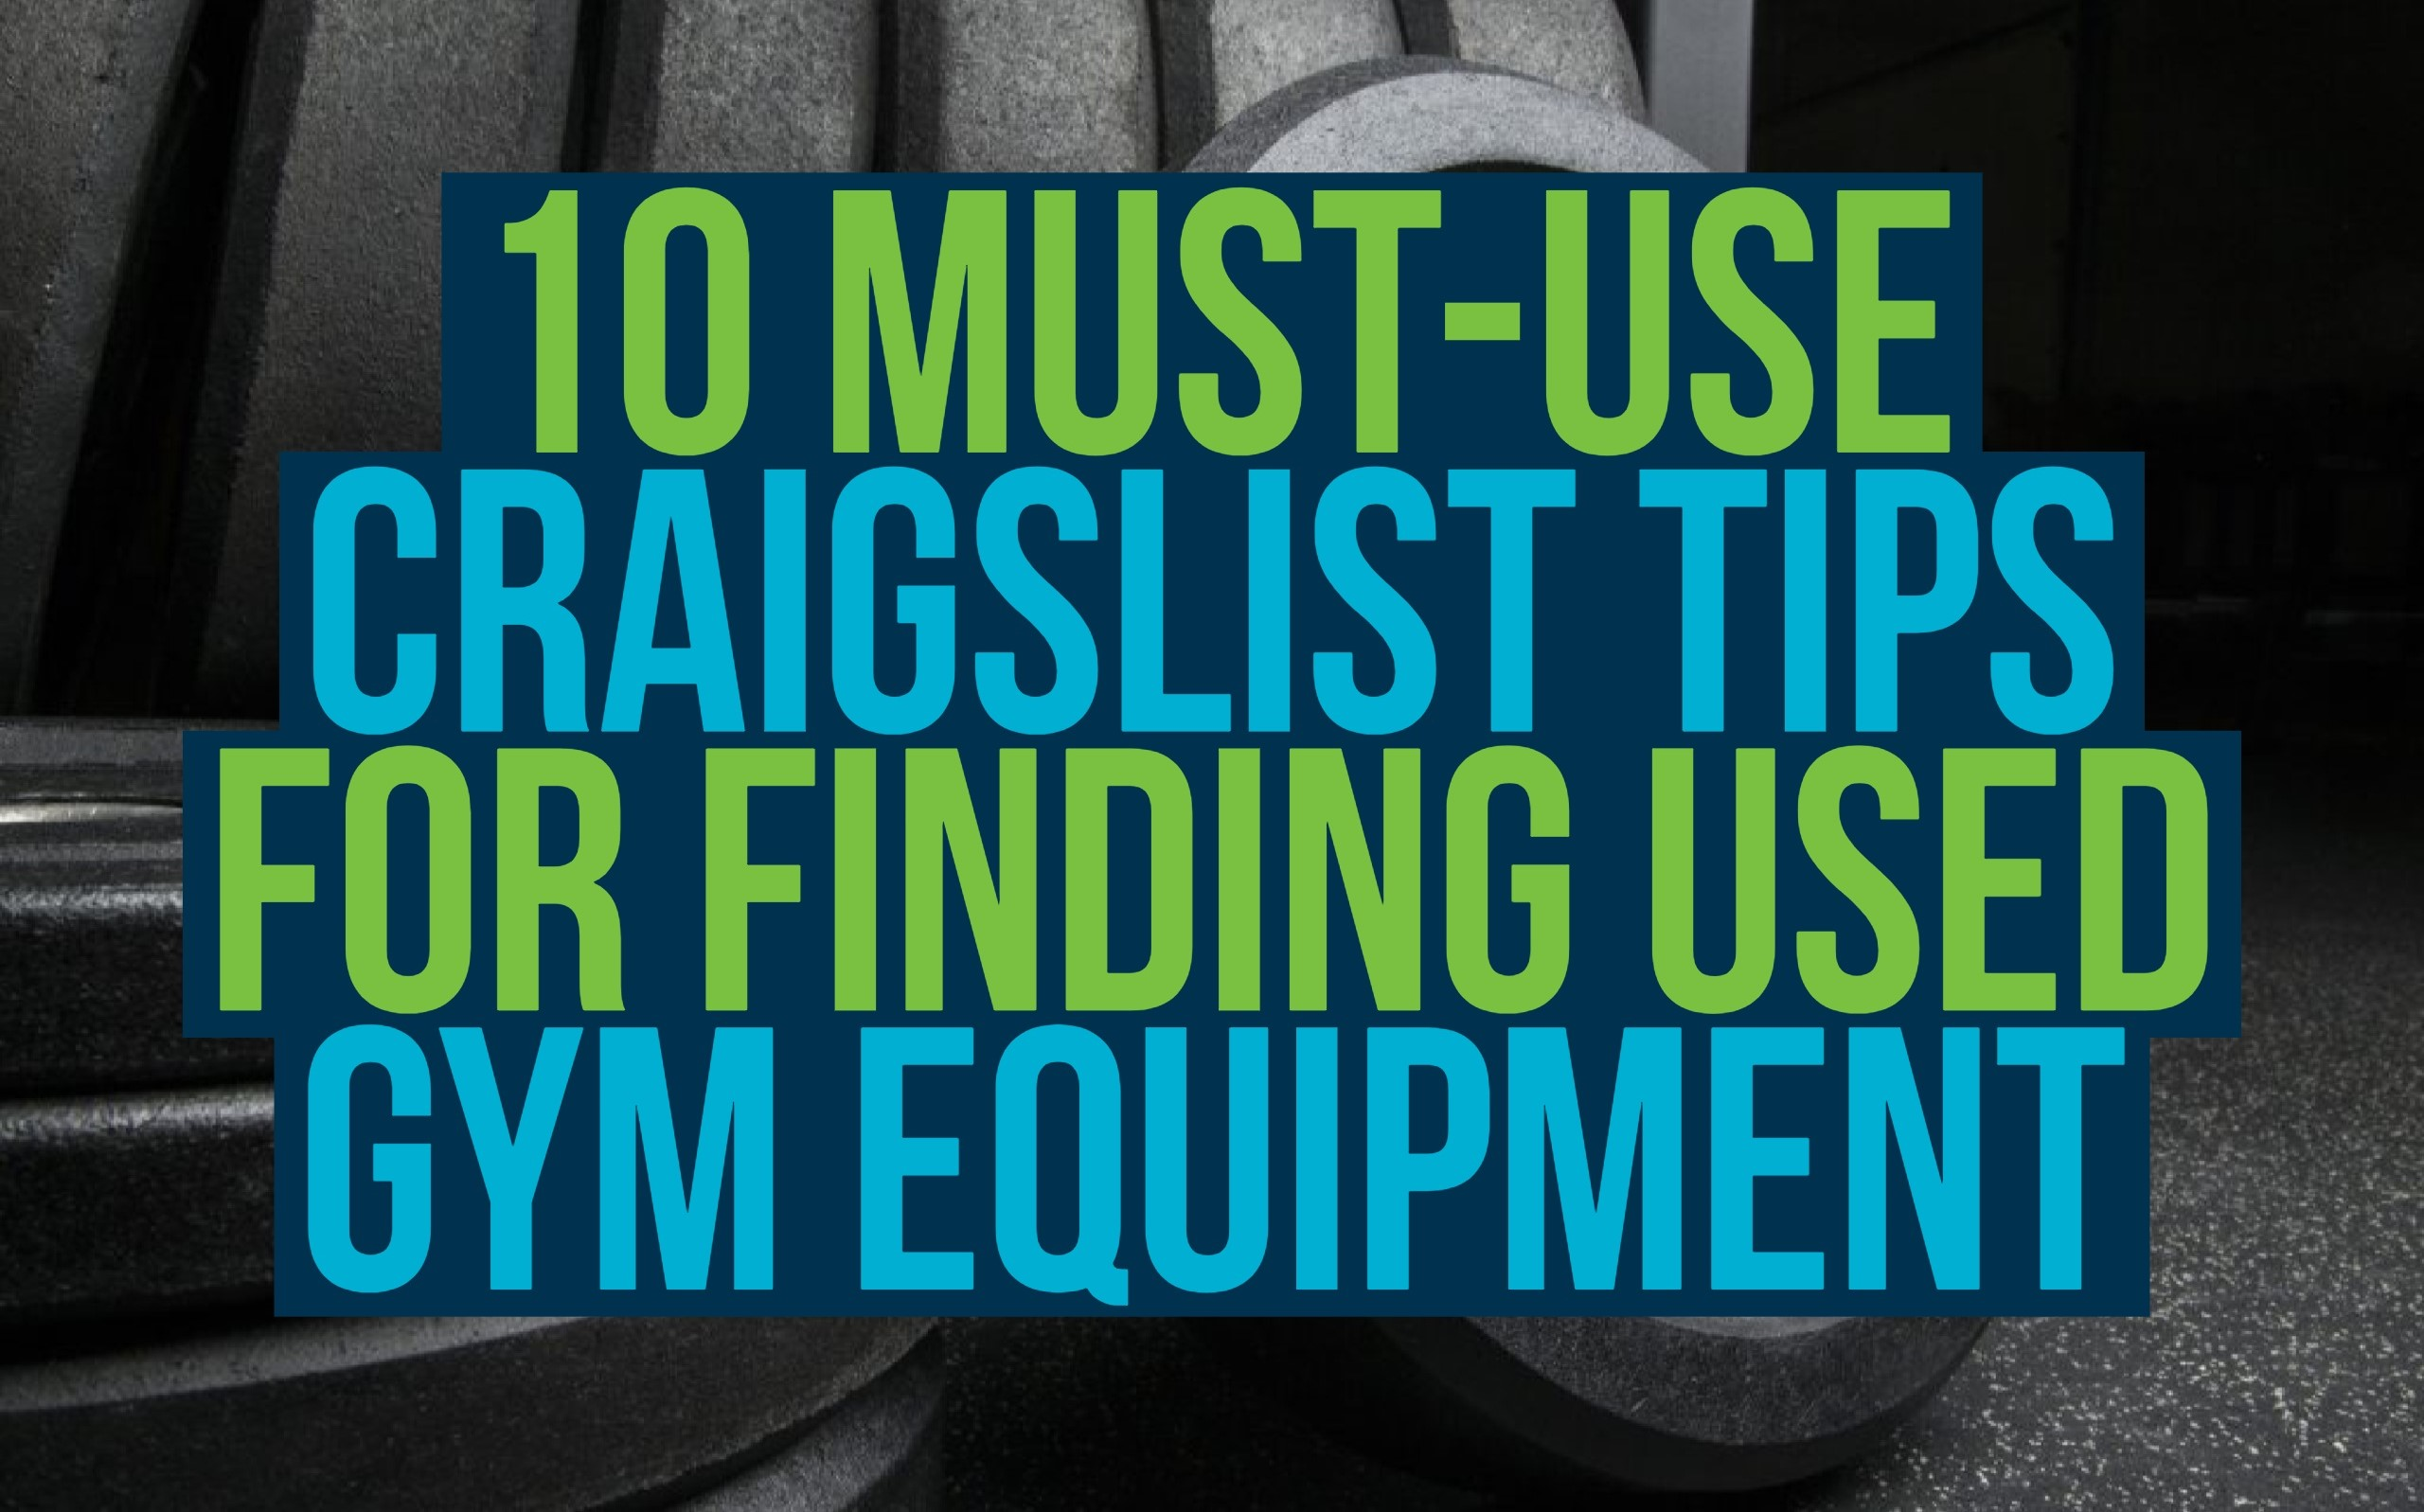 Must use craigslist tips for finding used gym equipment